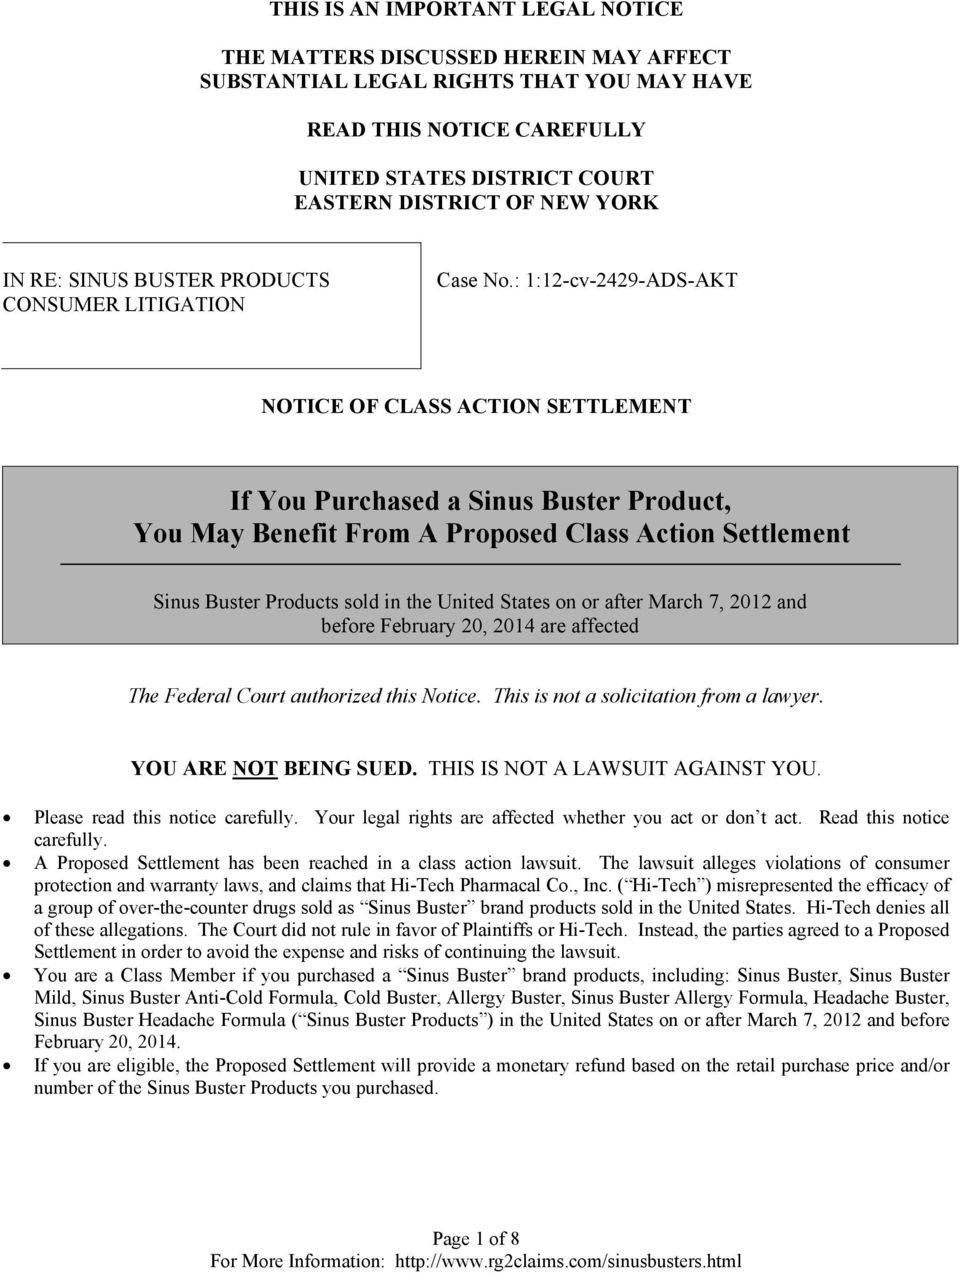 : 1:12-cv-2429-ADS-AKT NOTICE OF CLASS ACTION SETTLEMENT If You Purchased a Sinus Buster Product, You May Benefit From A Proposed Class Action Settlement Sinus Buster Products sold in the United